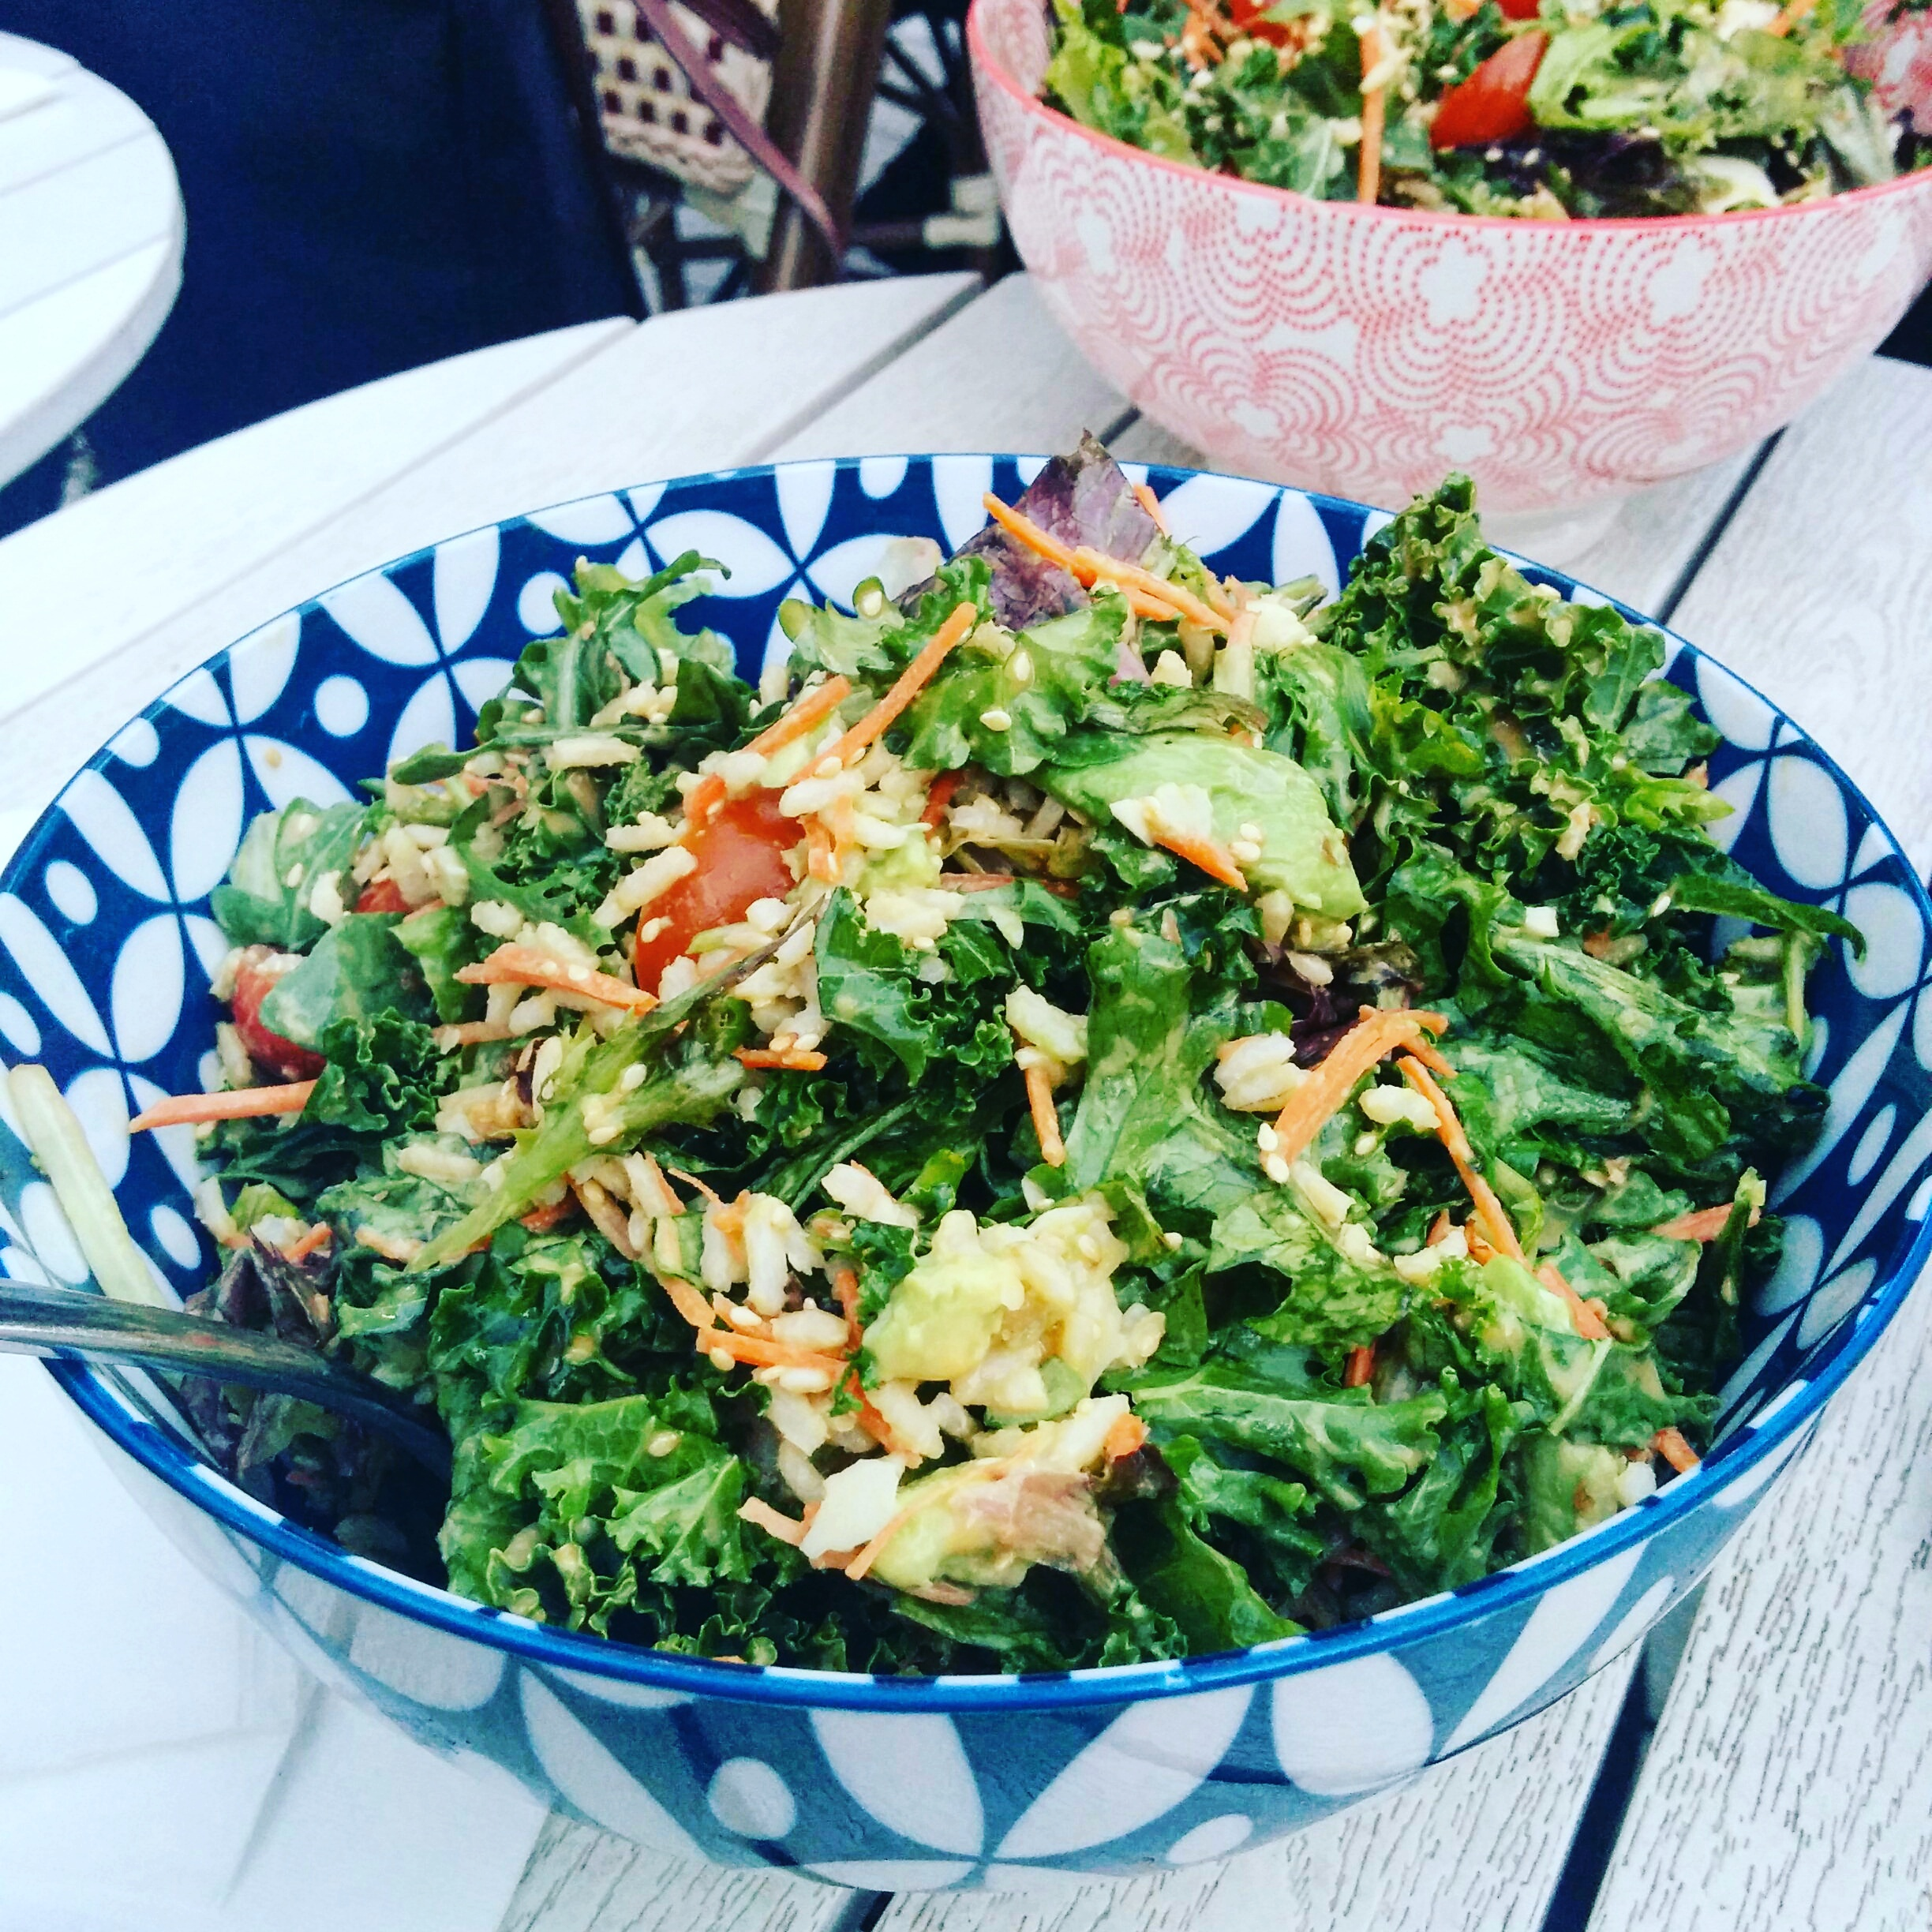 Mandy's: A salad like no other